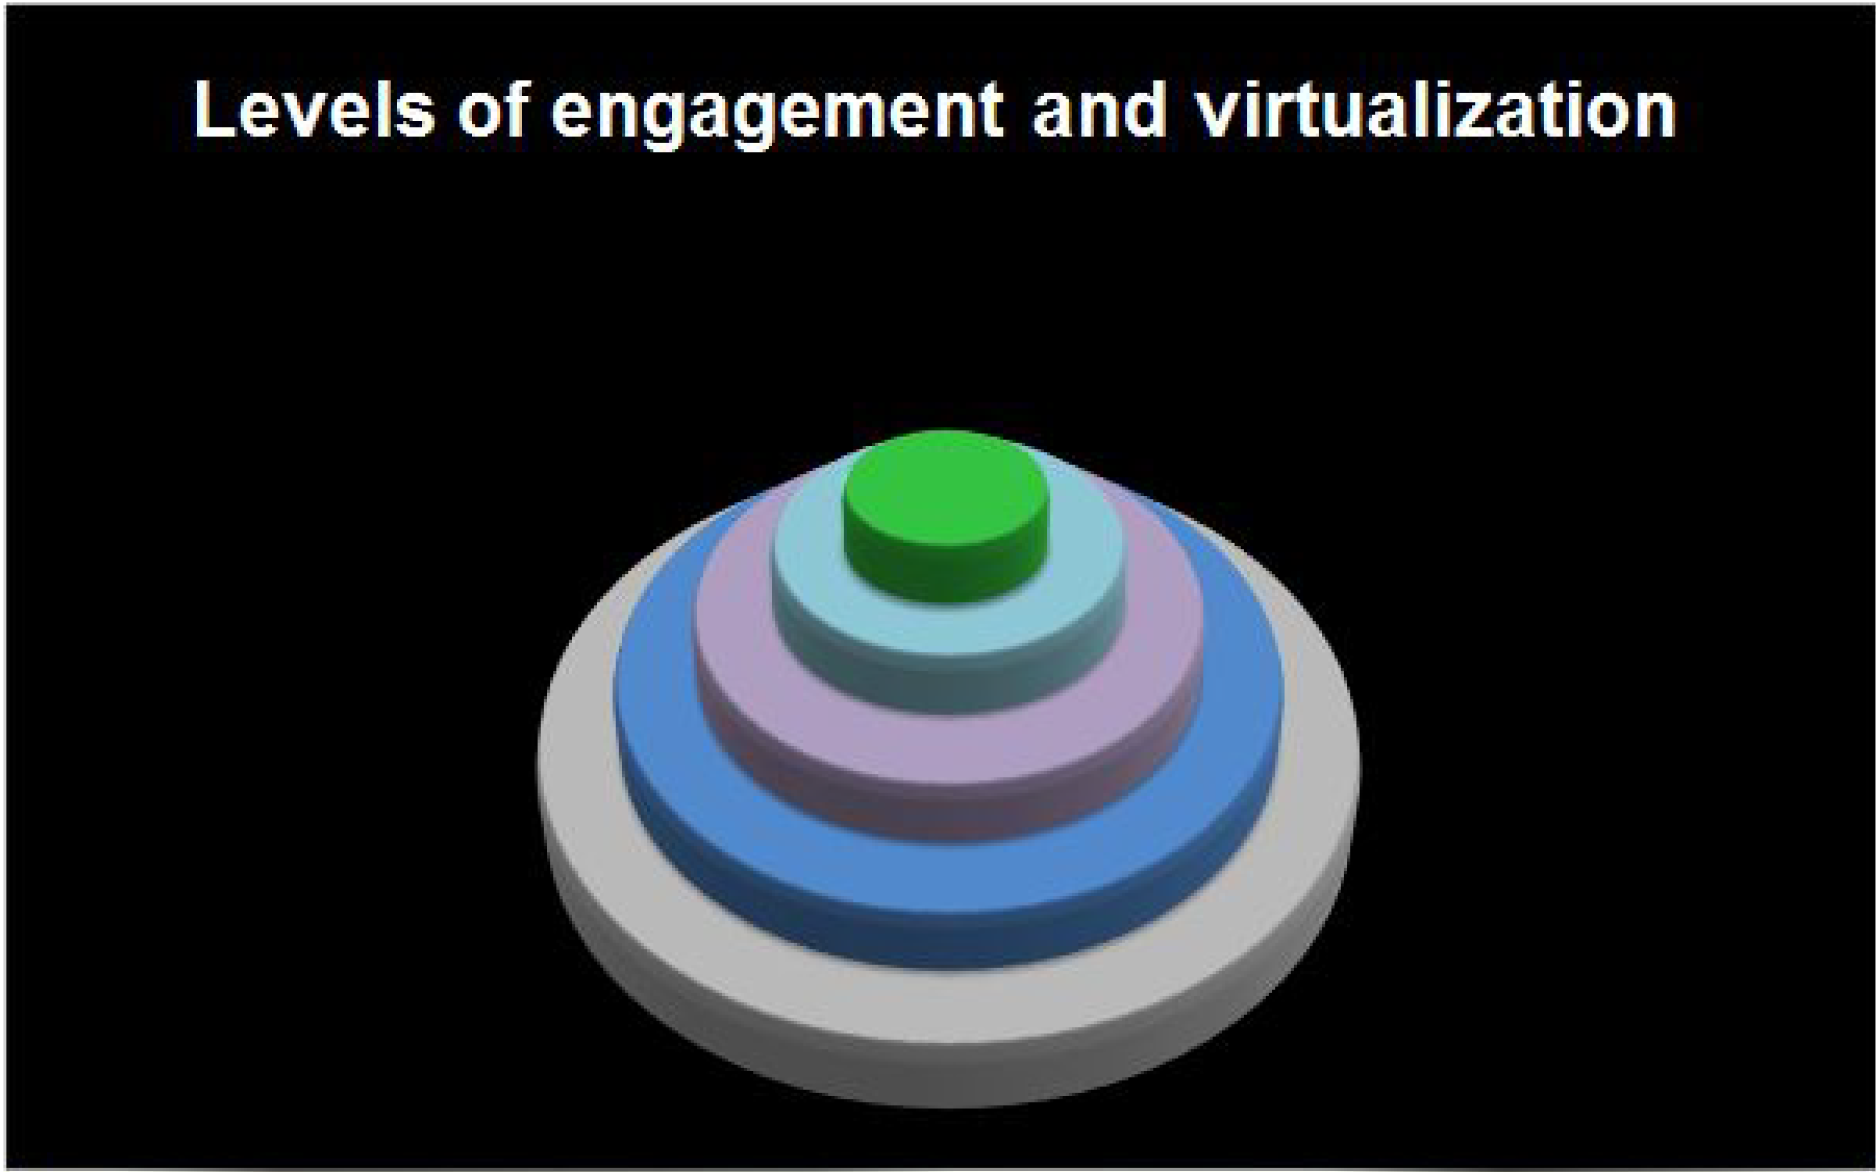 Levels of engagement and virtualization